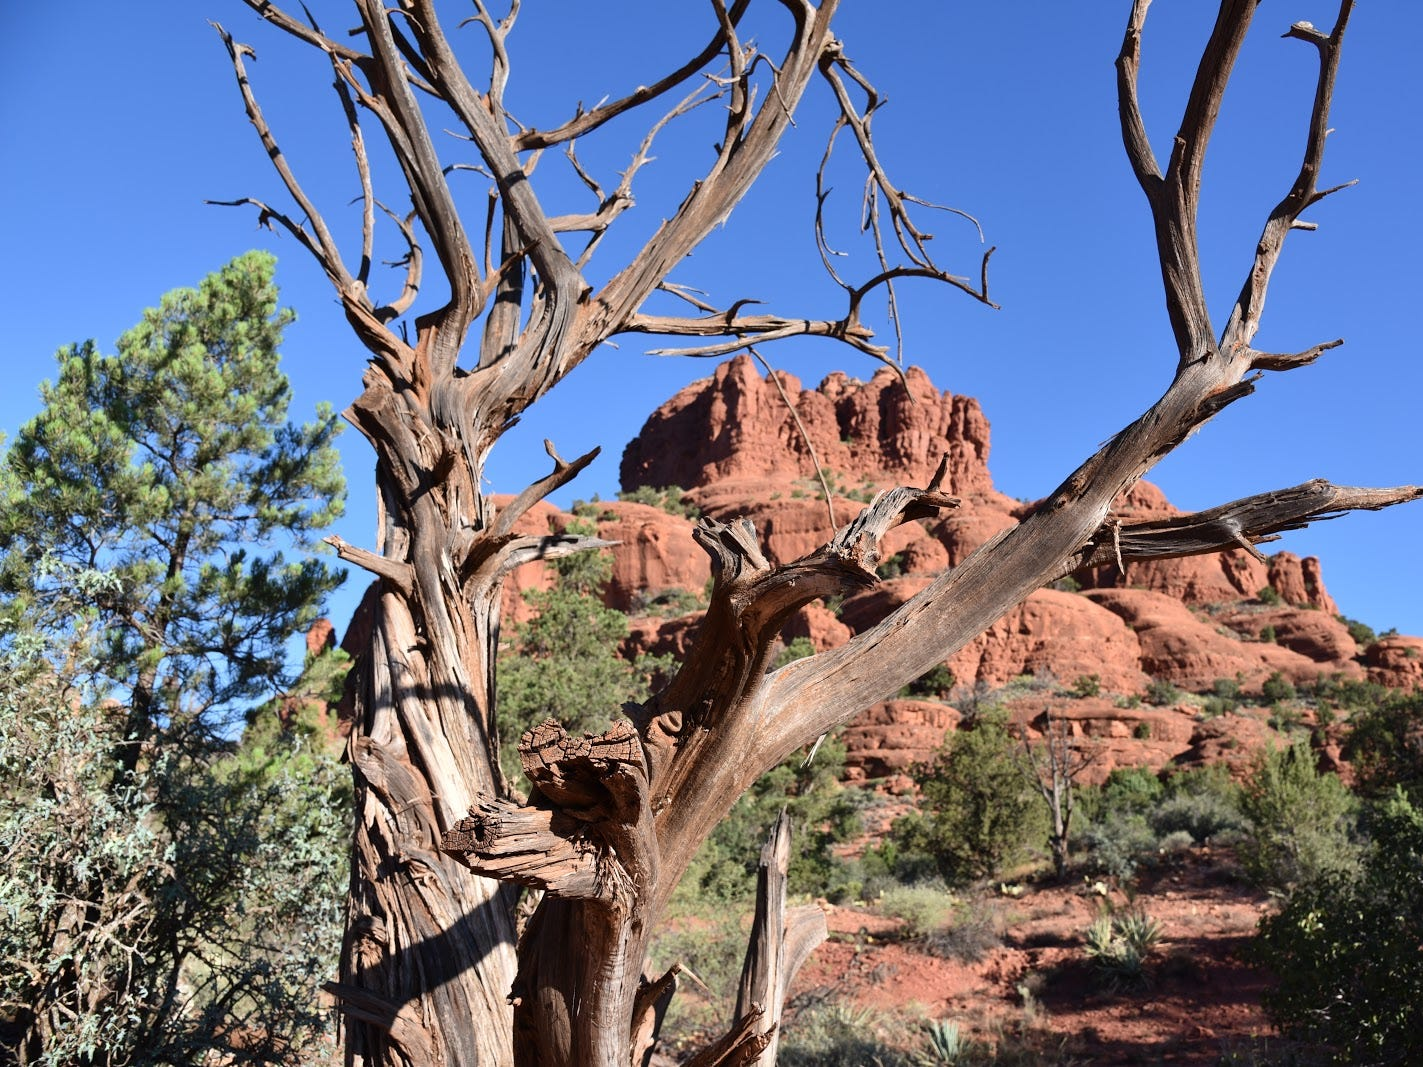 Rector Connector spins off Courthouse Butte Loop.